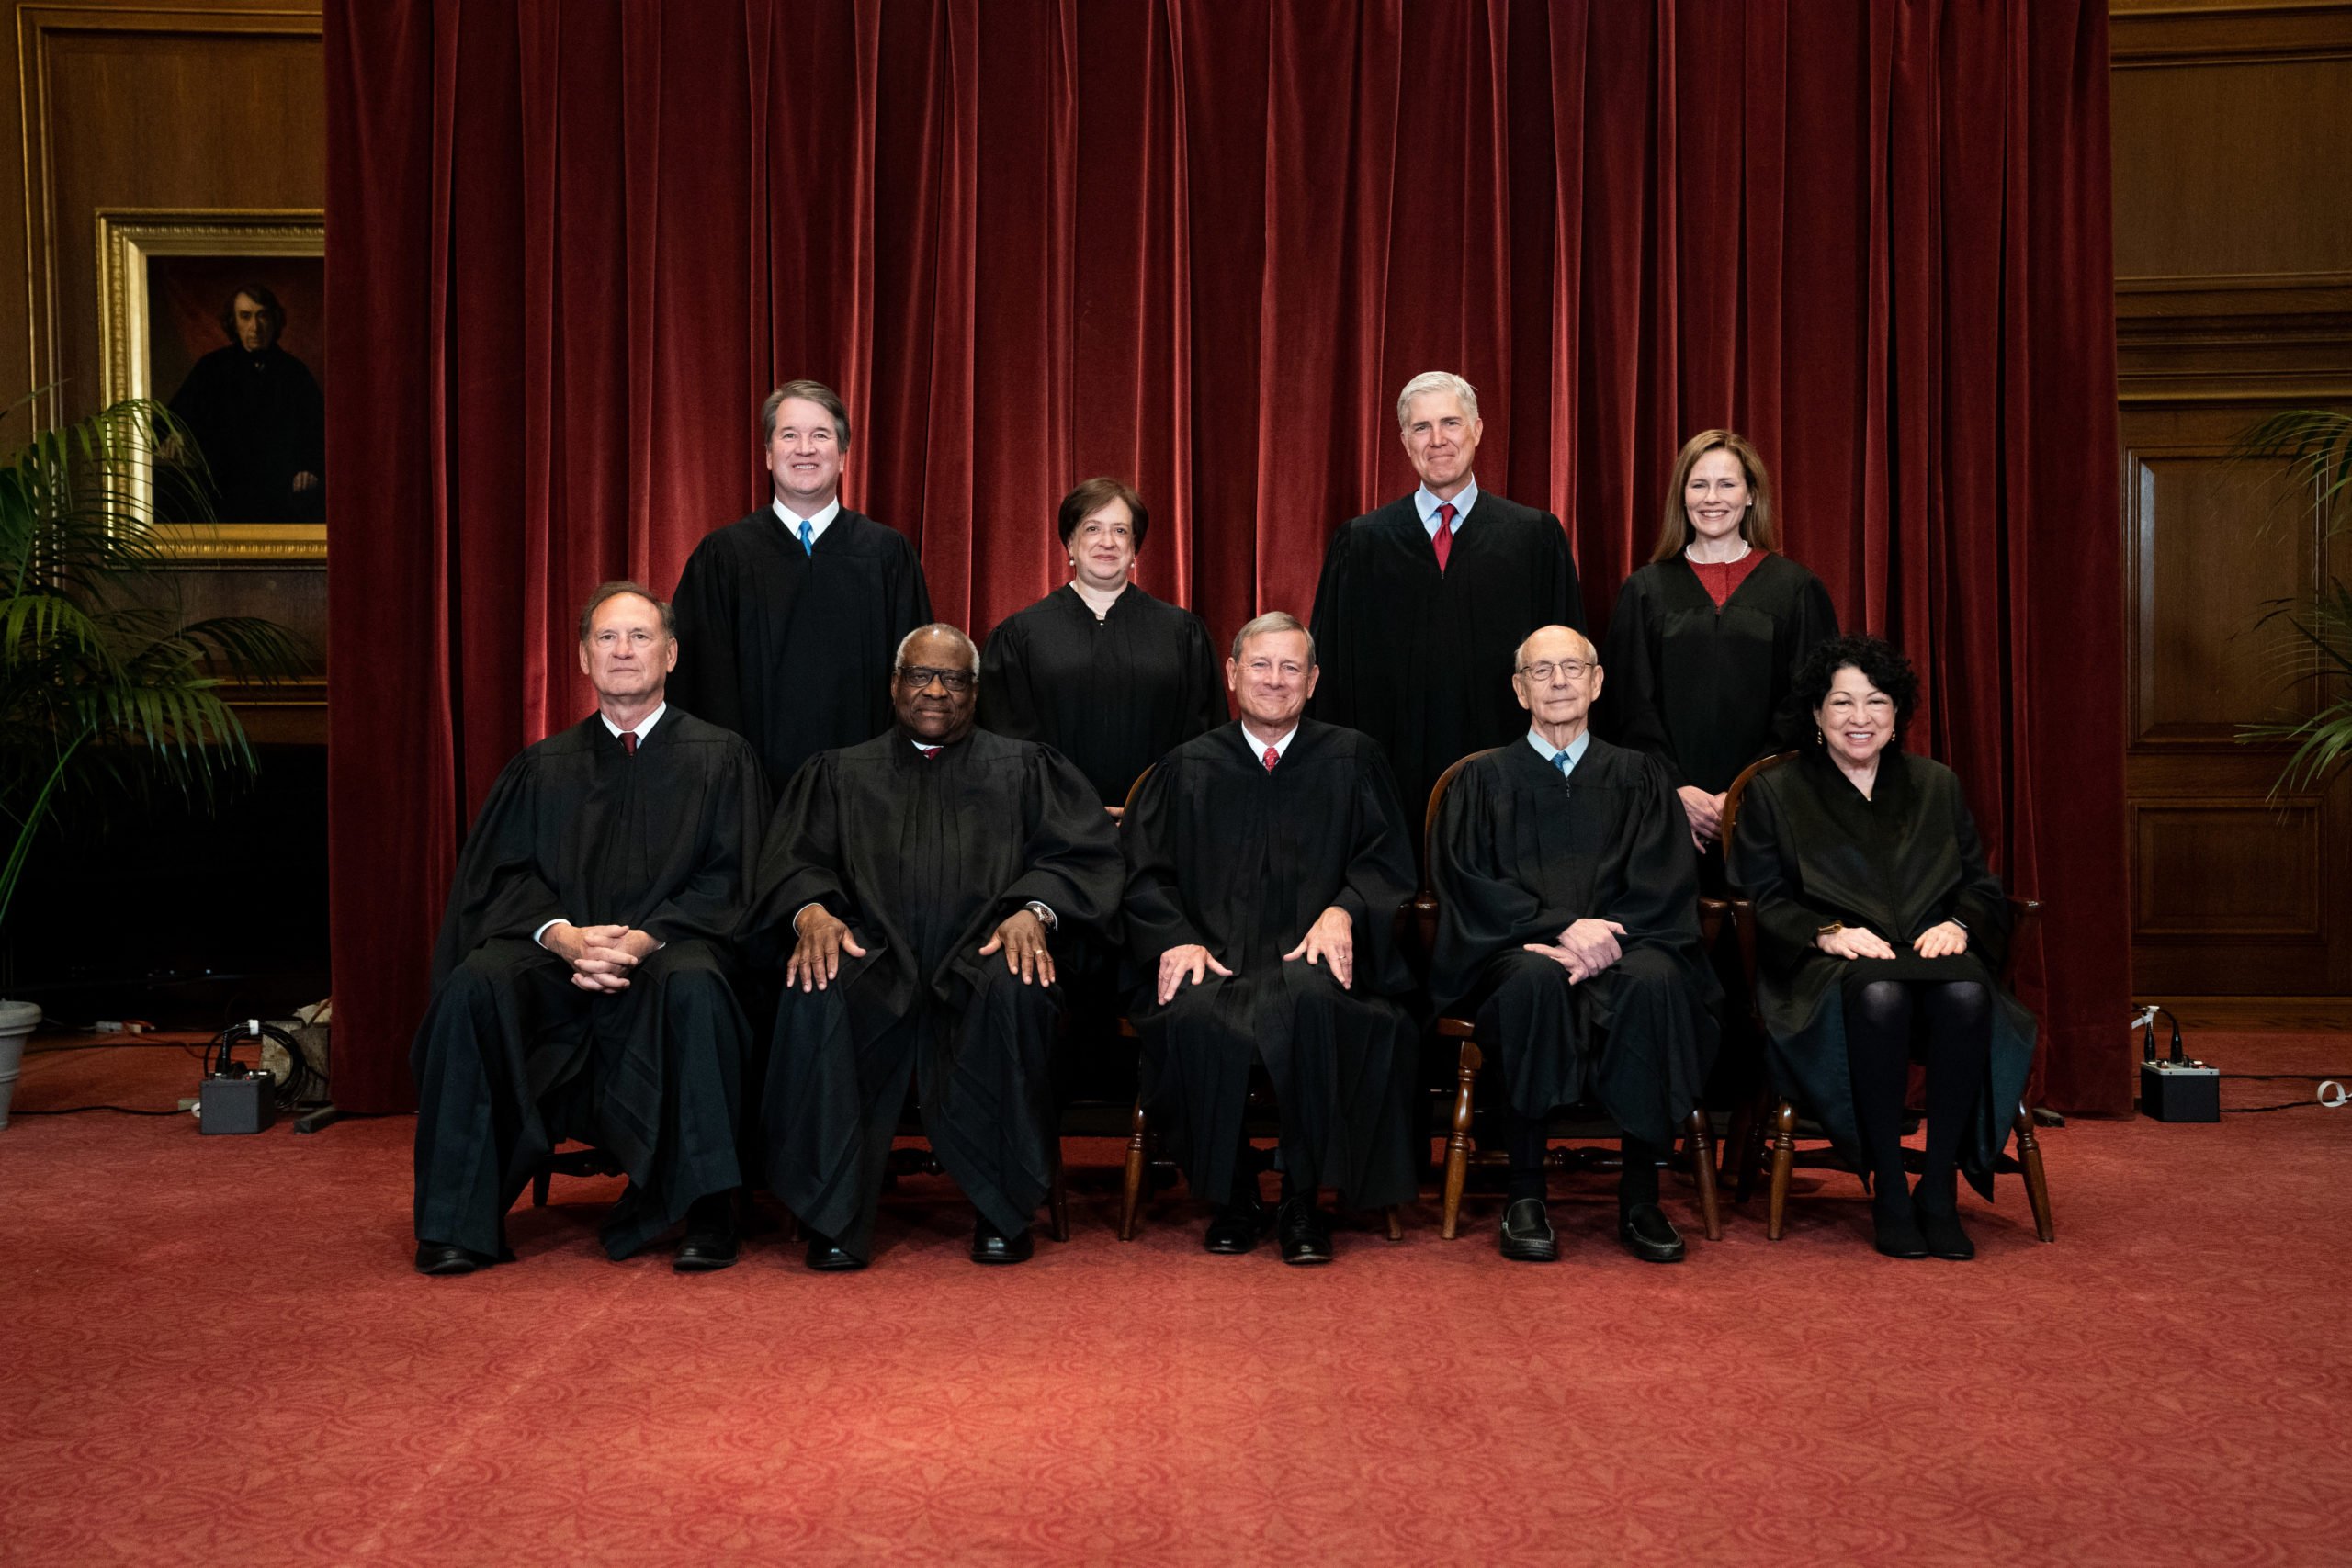 WASHINGTON, DC - APRIL 23: Members of the Supreme Court pose for a group photo at the Supreme Court in Washington, DC on April 23, 2021. Seated from left: Associate Justice Samuel Alito, Associate Justice Clarence Thomas, Chief Justice John Roberts, Associate Justice Stephen Breyer and Associate Justice Sonia Sotomayor, Standing from left: Associate Justice Brett Kavanaugh, Associate Justice Elena Kagan, Associate Justice Neil Gorsuch and Associate Justice Amy Coney Barrett. (Photo by Erin Schaff-Pool/Getty Images)